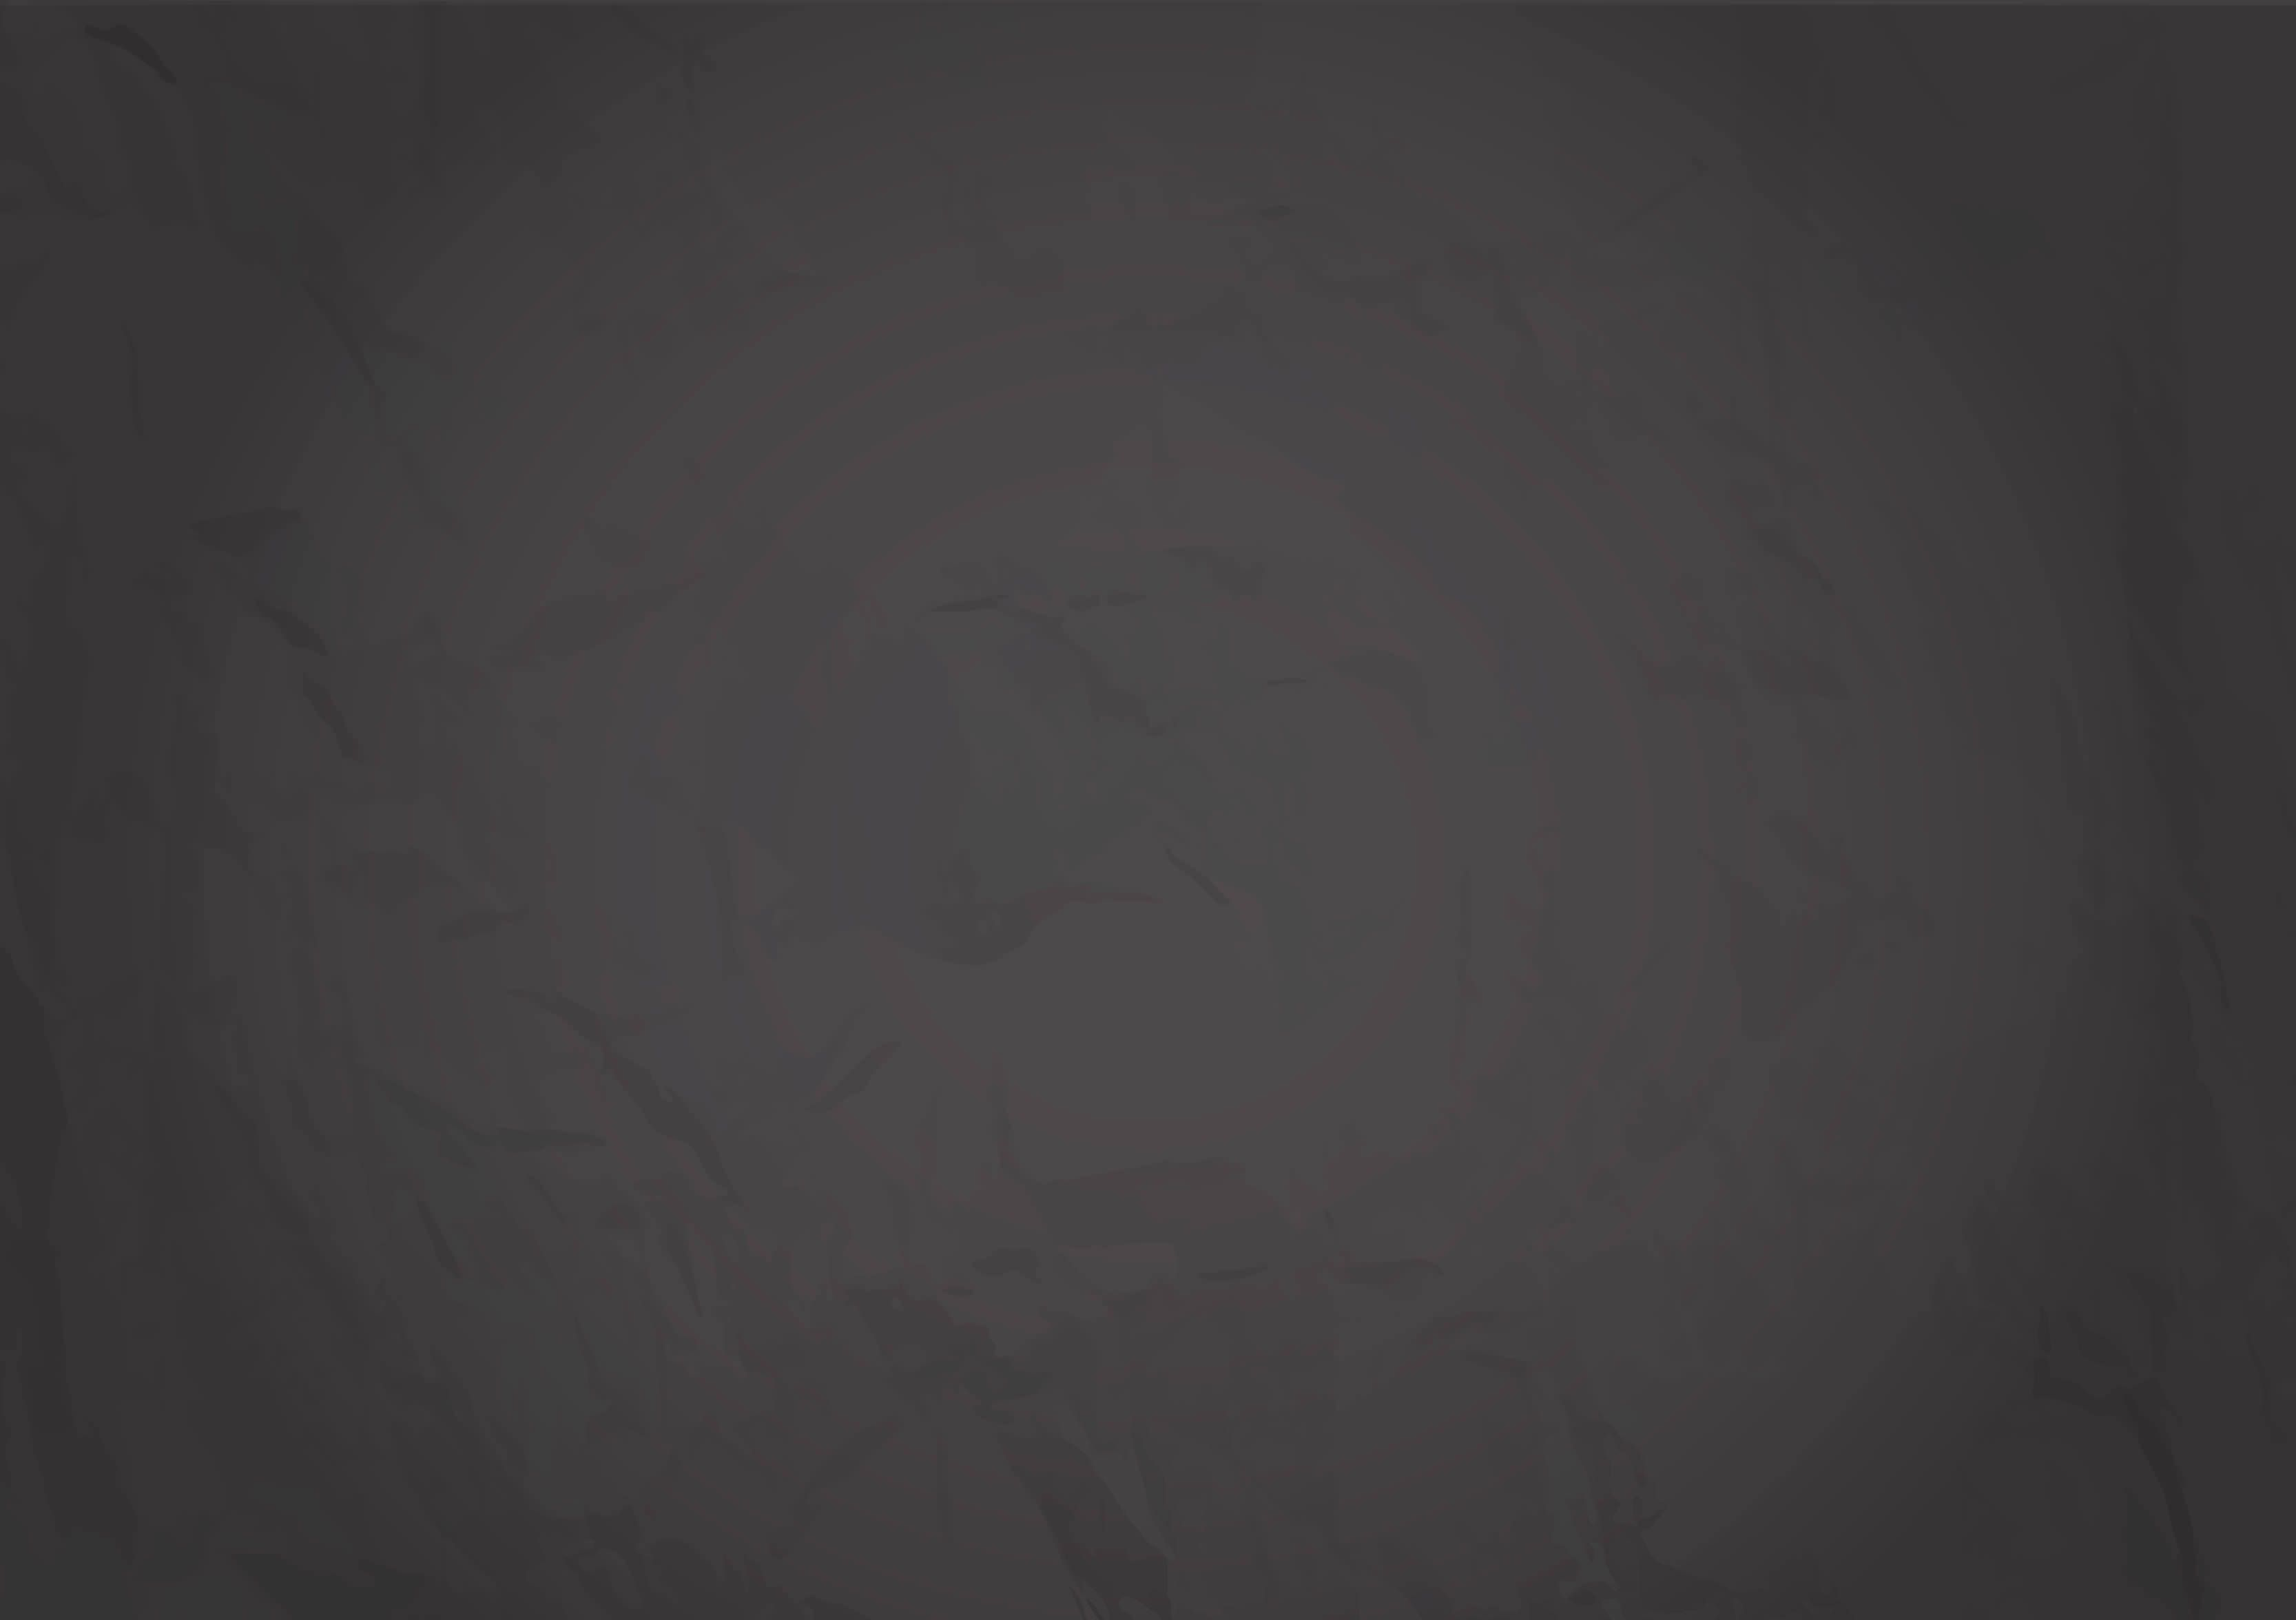 3333x2352 FREE 25+ Black Paper Texture Designs in PSD | Vector EPS